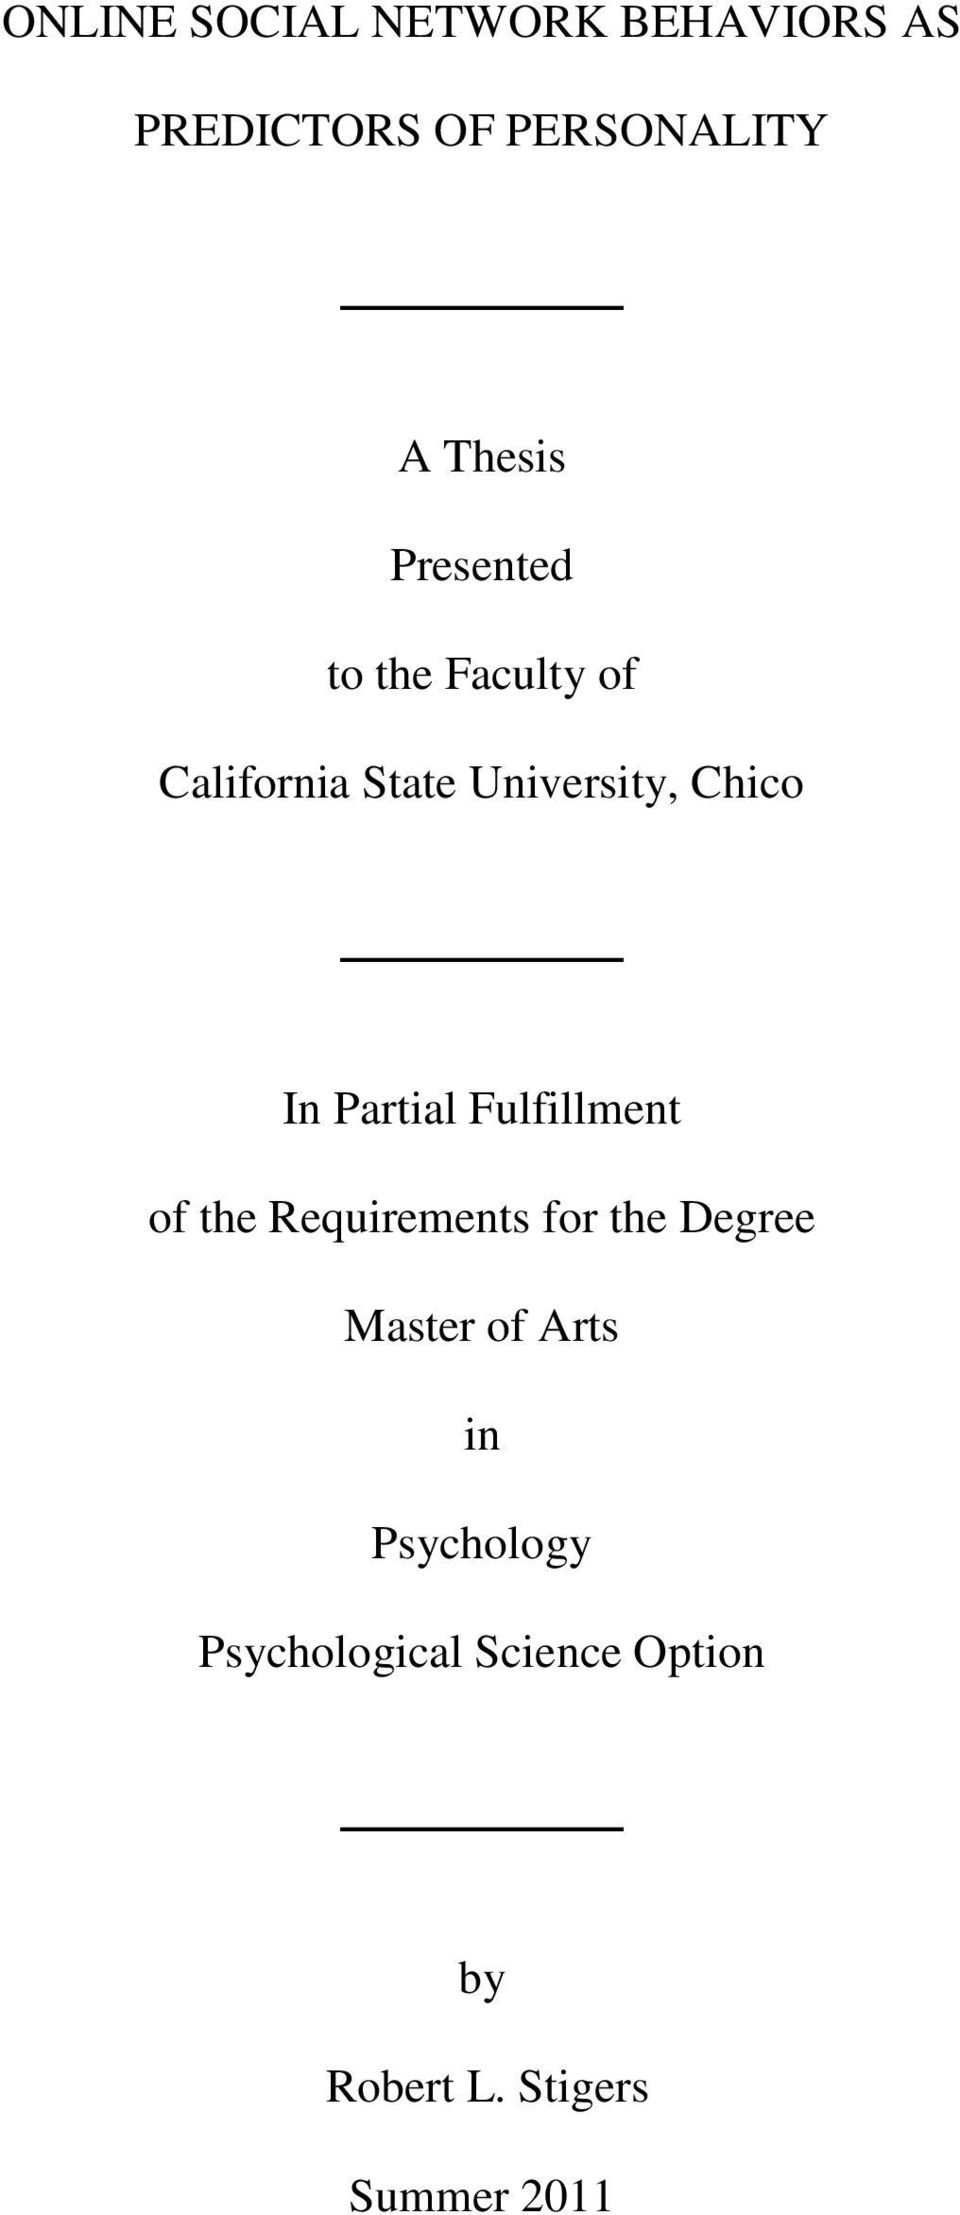 Partial Fulfillment of the Requirements for the Degree Master of Arts